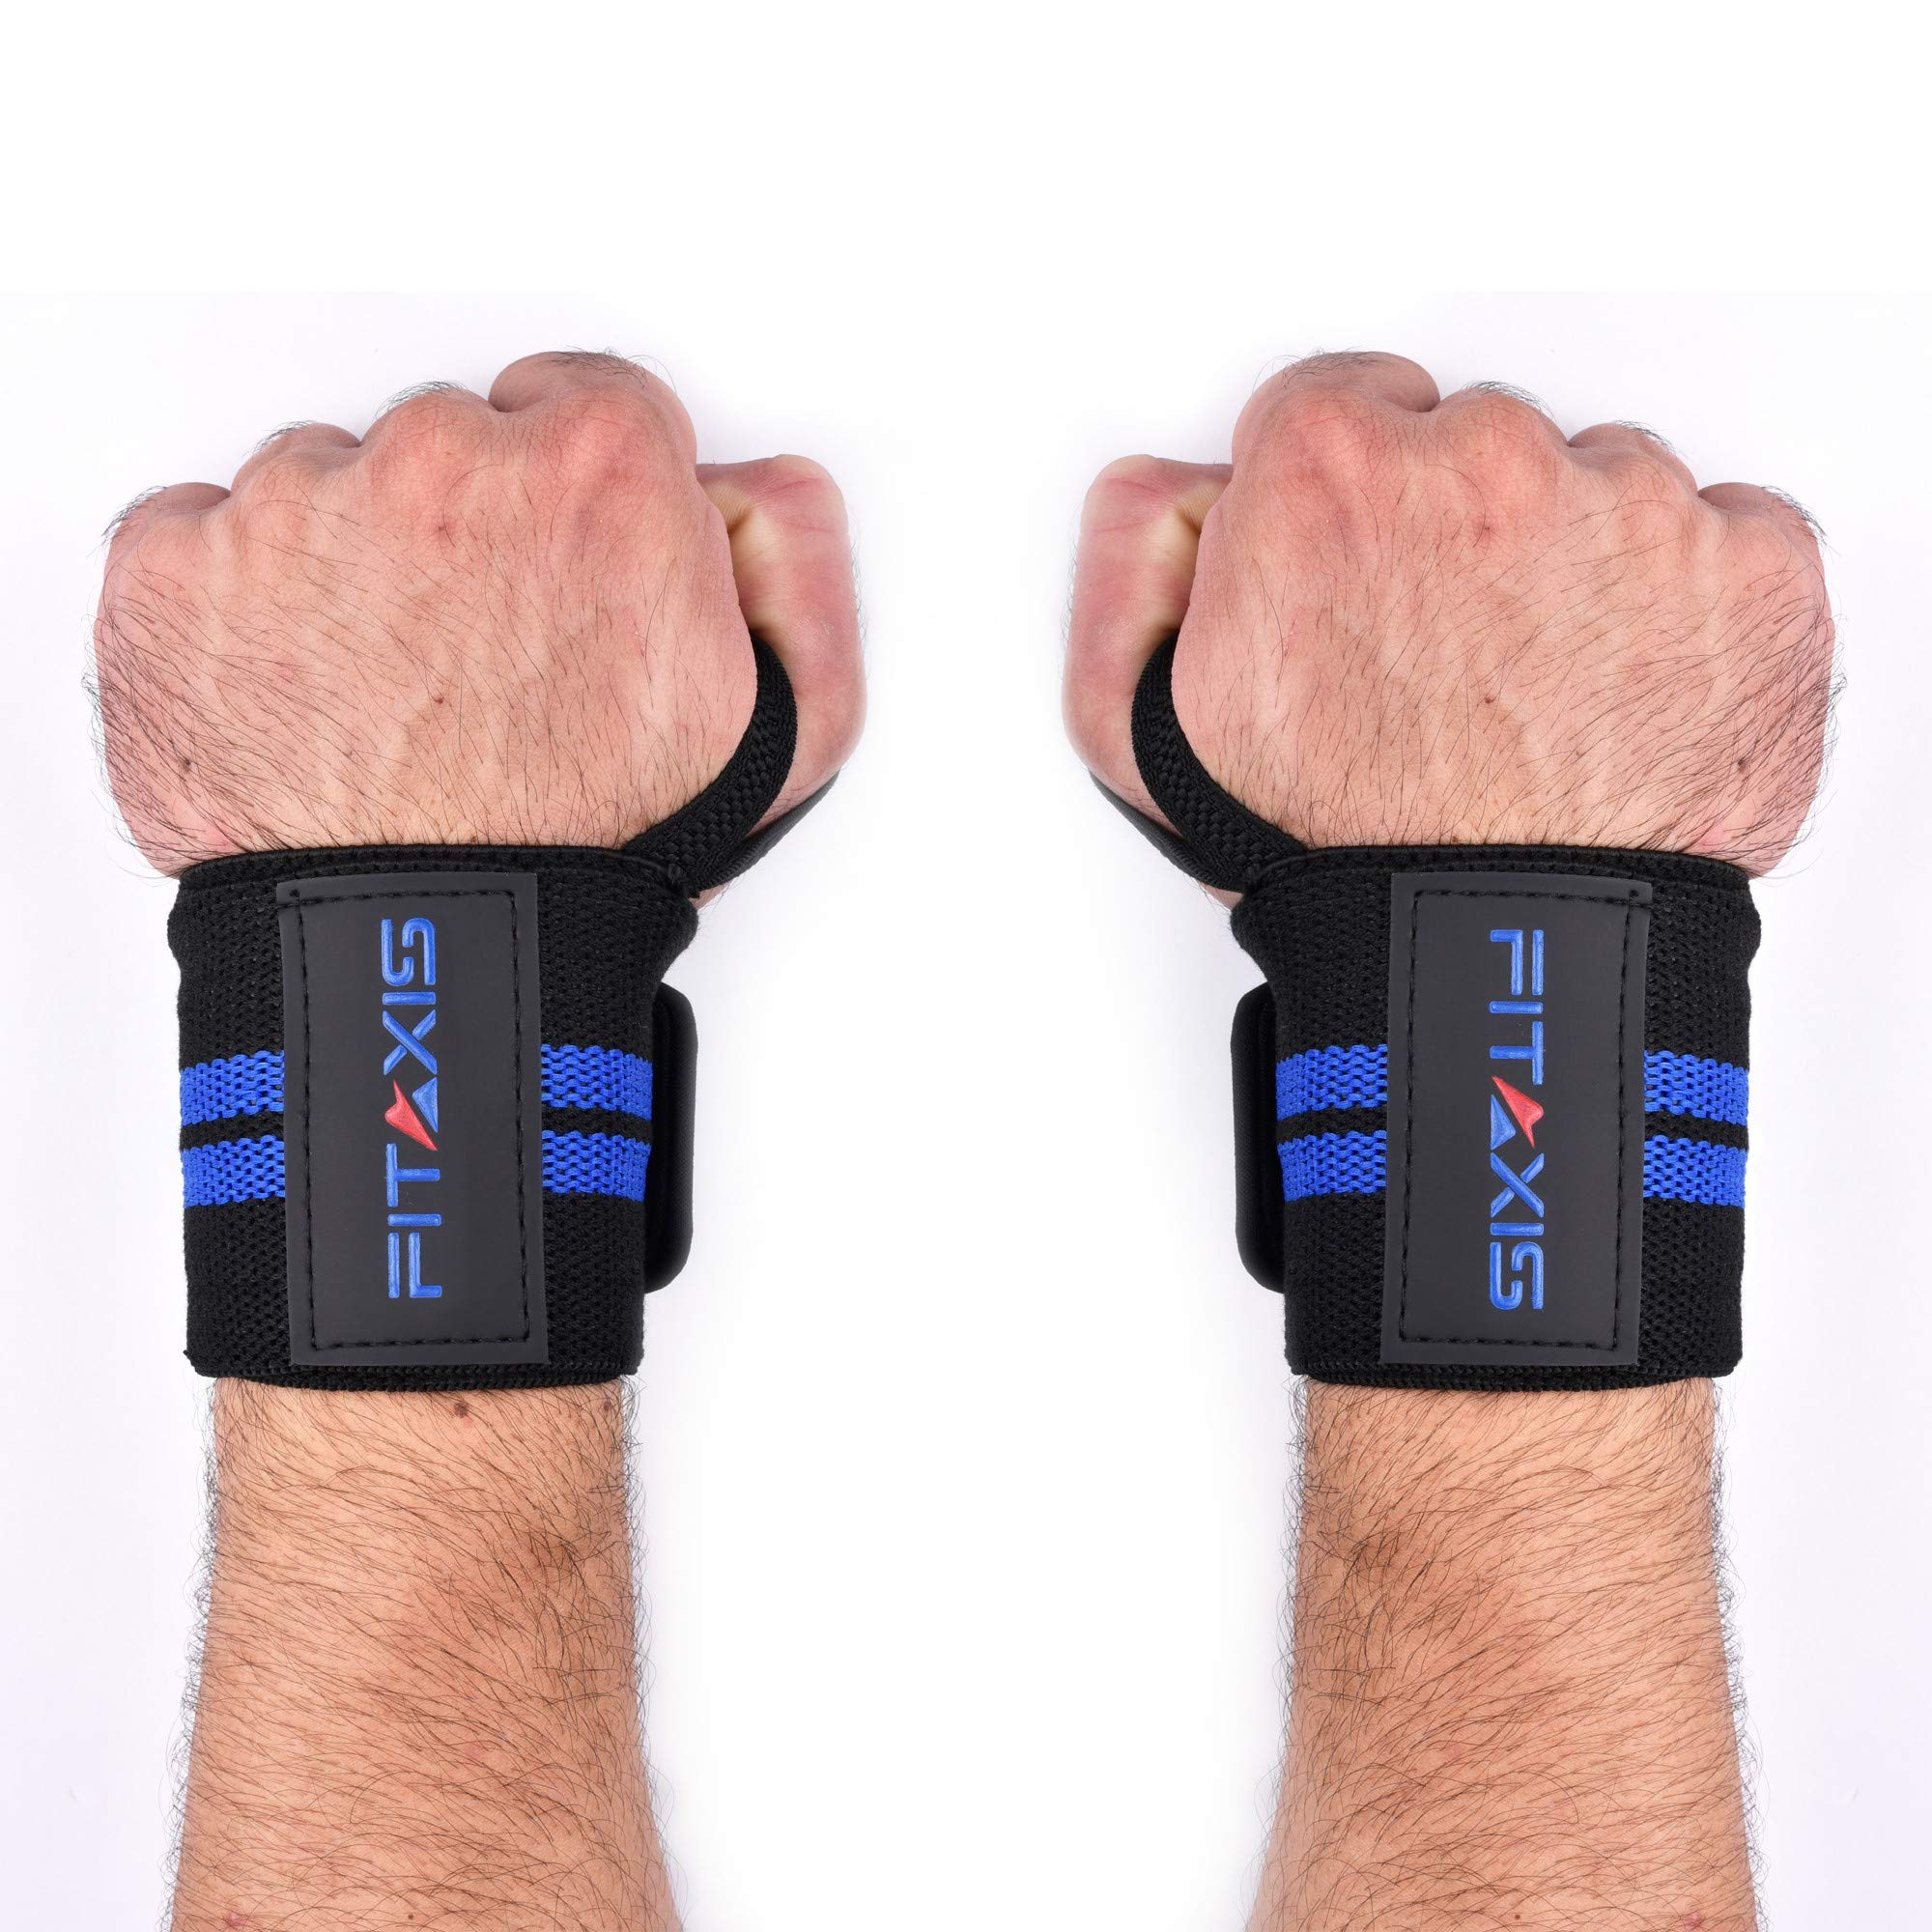 FITAXIS Muñequeras | Wrist Wraps/Bands for Gimnasio Fitness Crossfit Weightlifting para Hombres y Mujeres (Black/Blue, 18"|2000|2000|?|8f30758b52d3450916e9da821898476e|False|UNLIKELY|0.32581210136413574